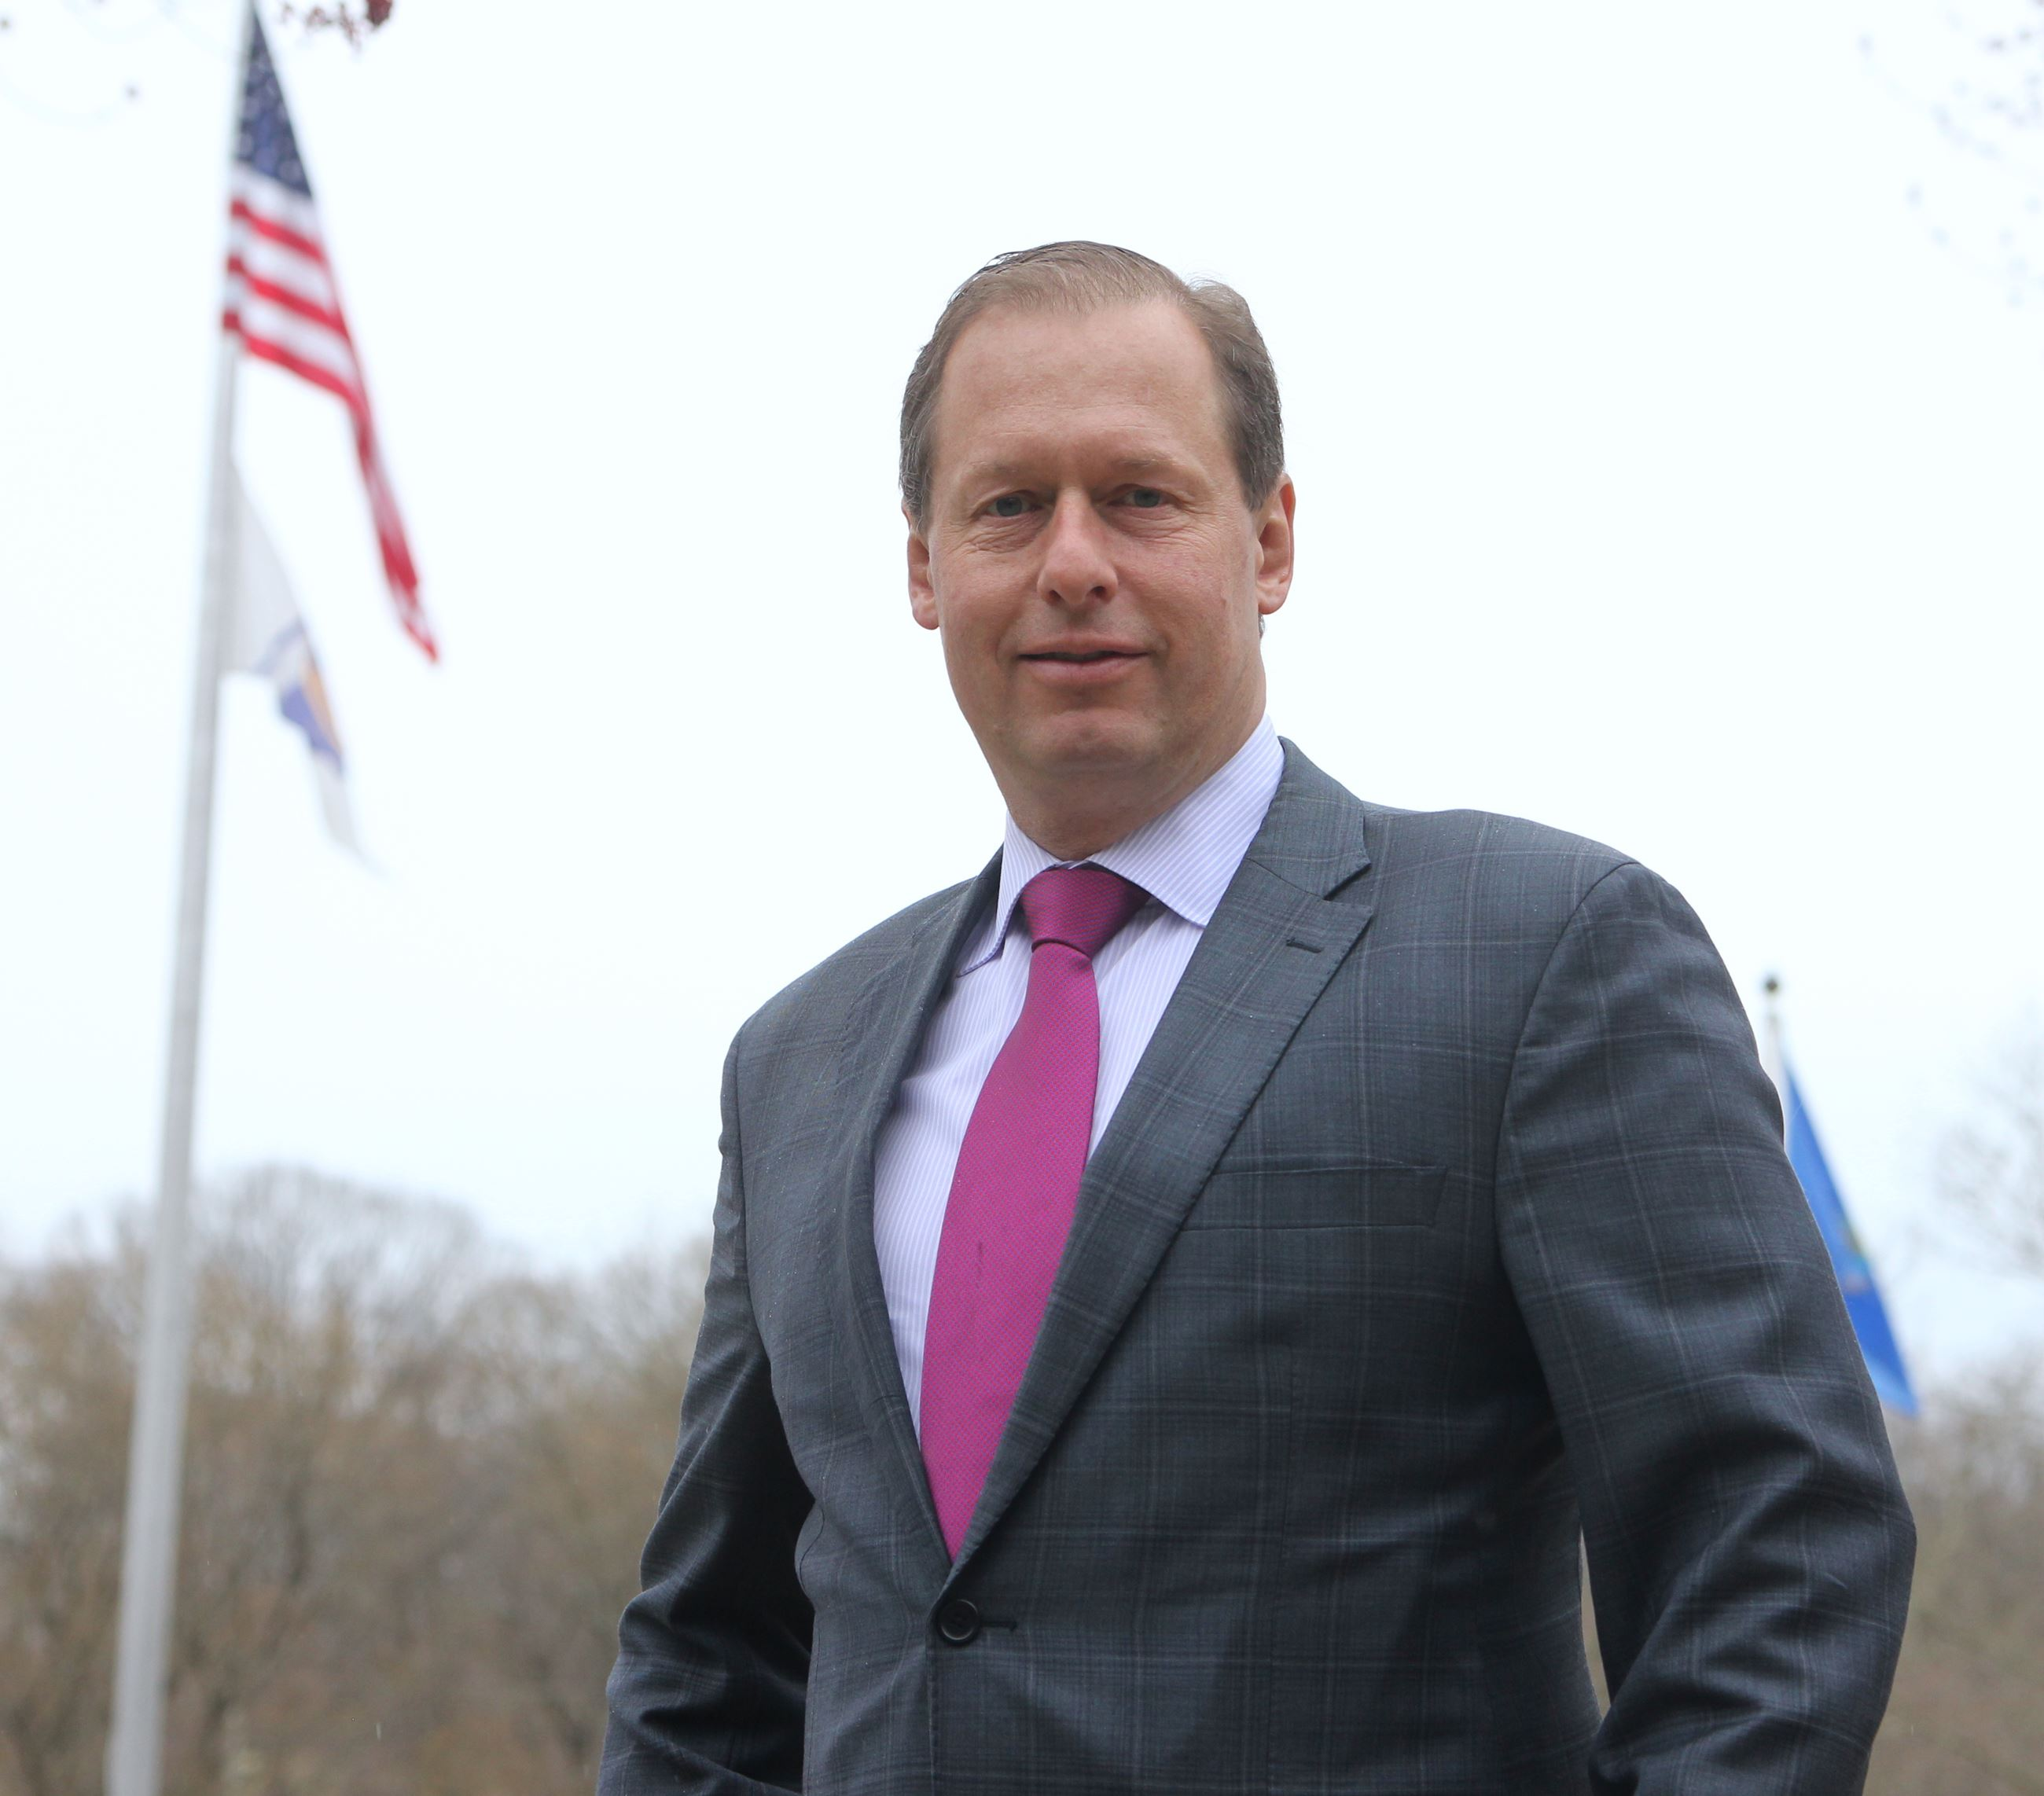 This is a photo of Mayor Eric Hinds, who was elected by the Township Committee to serve as the Mayor